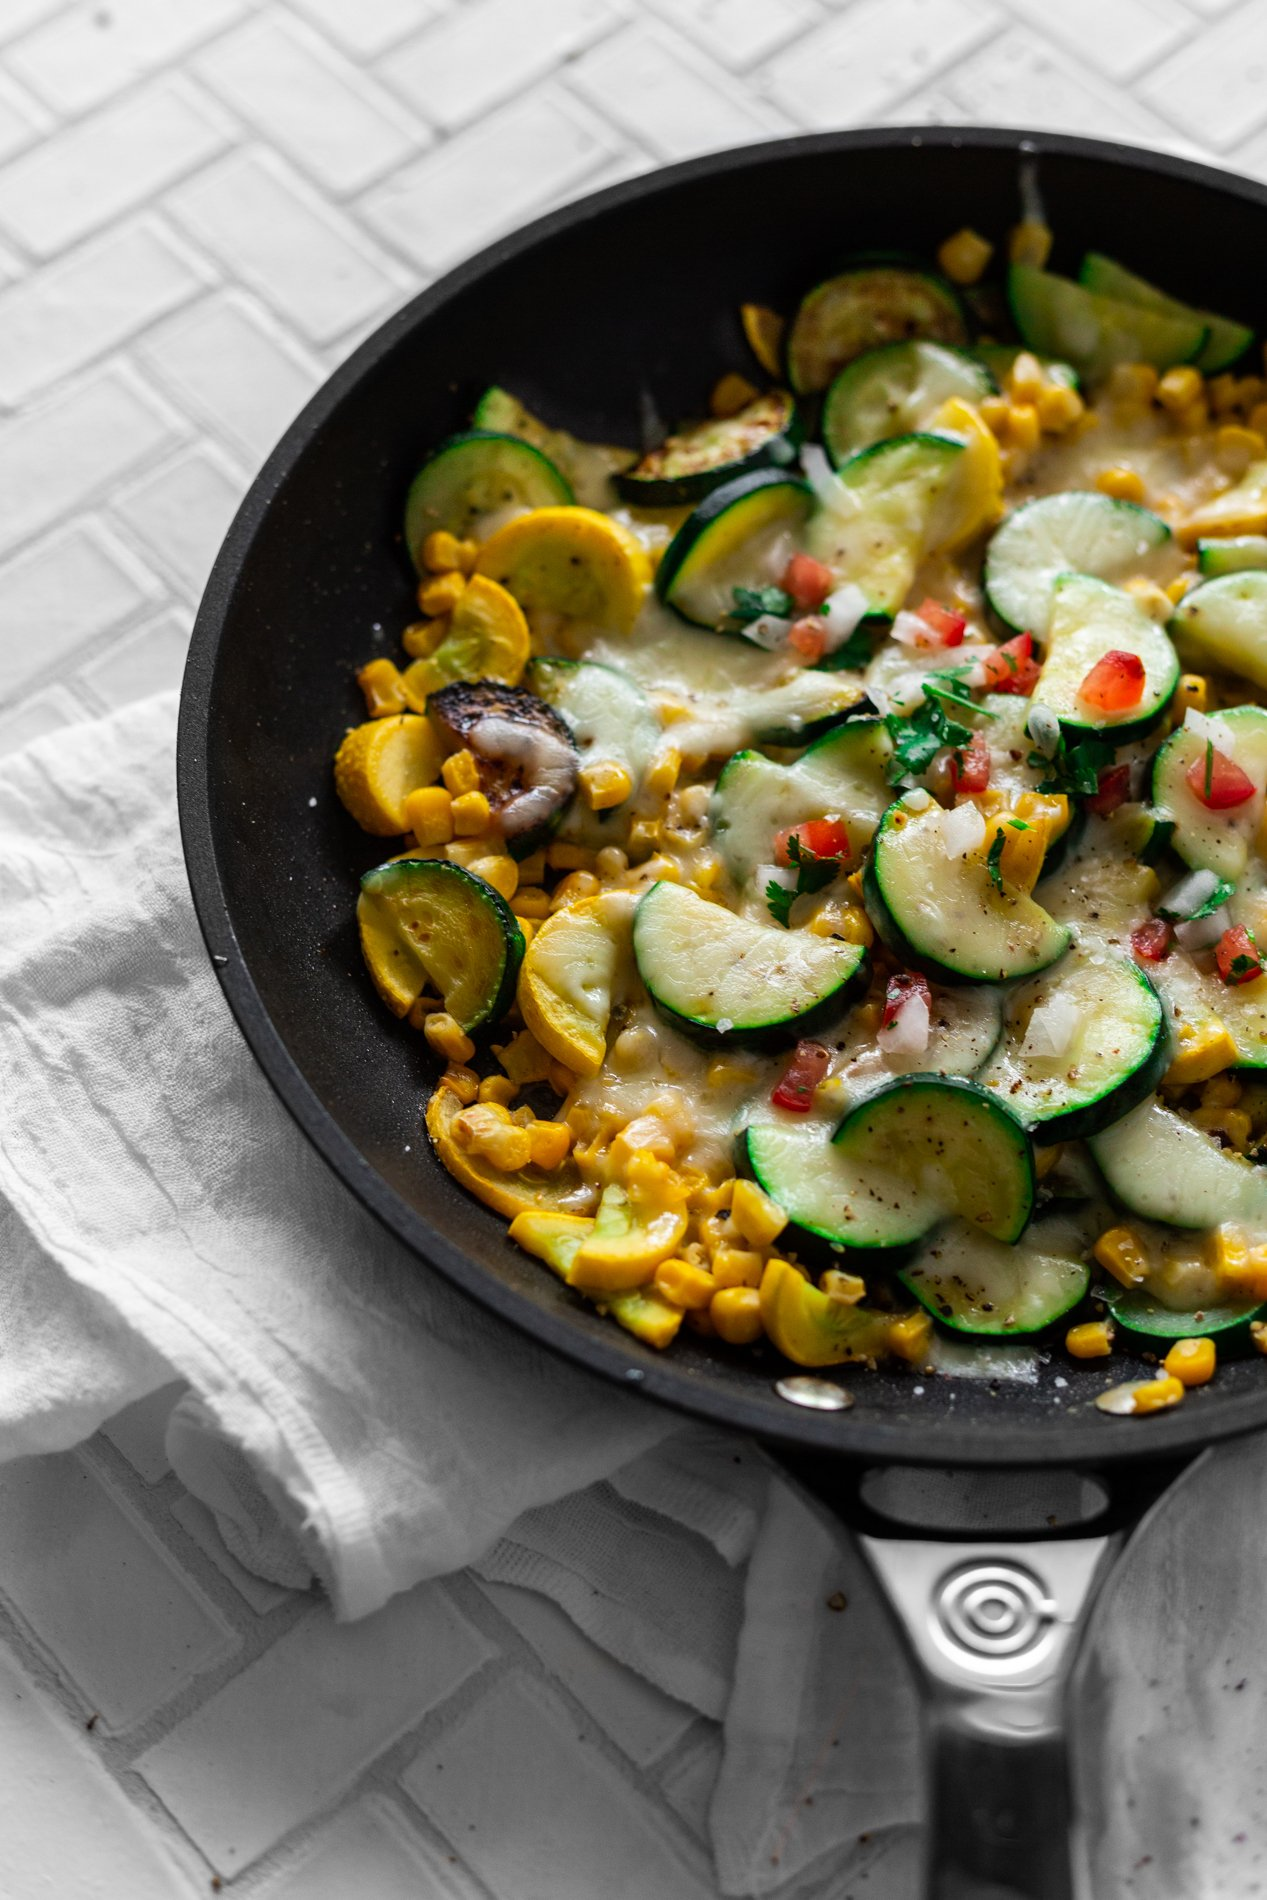 angled view of a skillet with calabacitas con elote, or zucchini with corn and cheese, sprinkled with tomatoes and cilantro